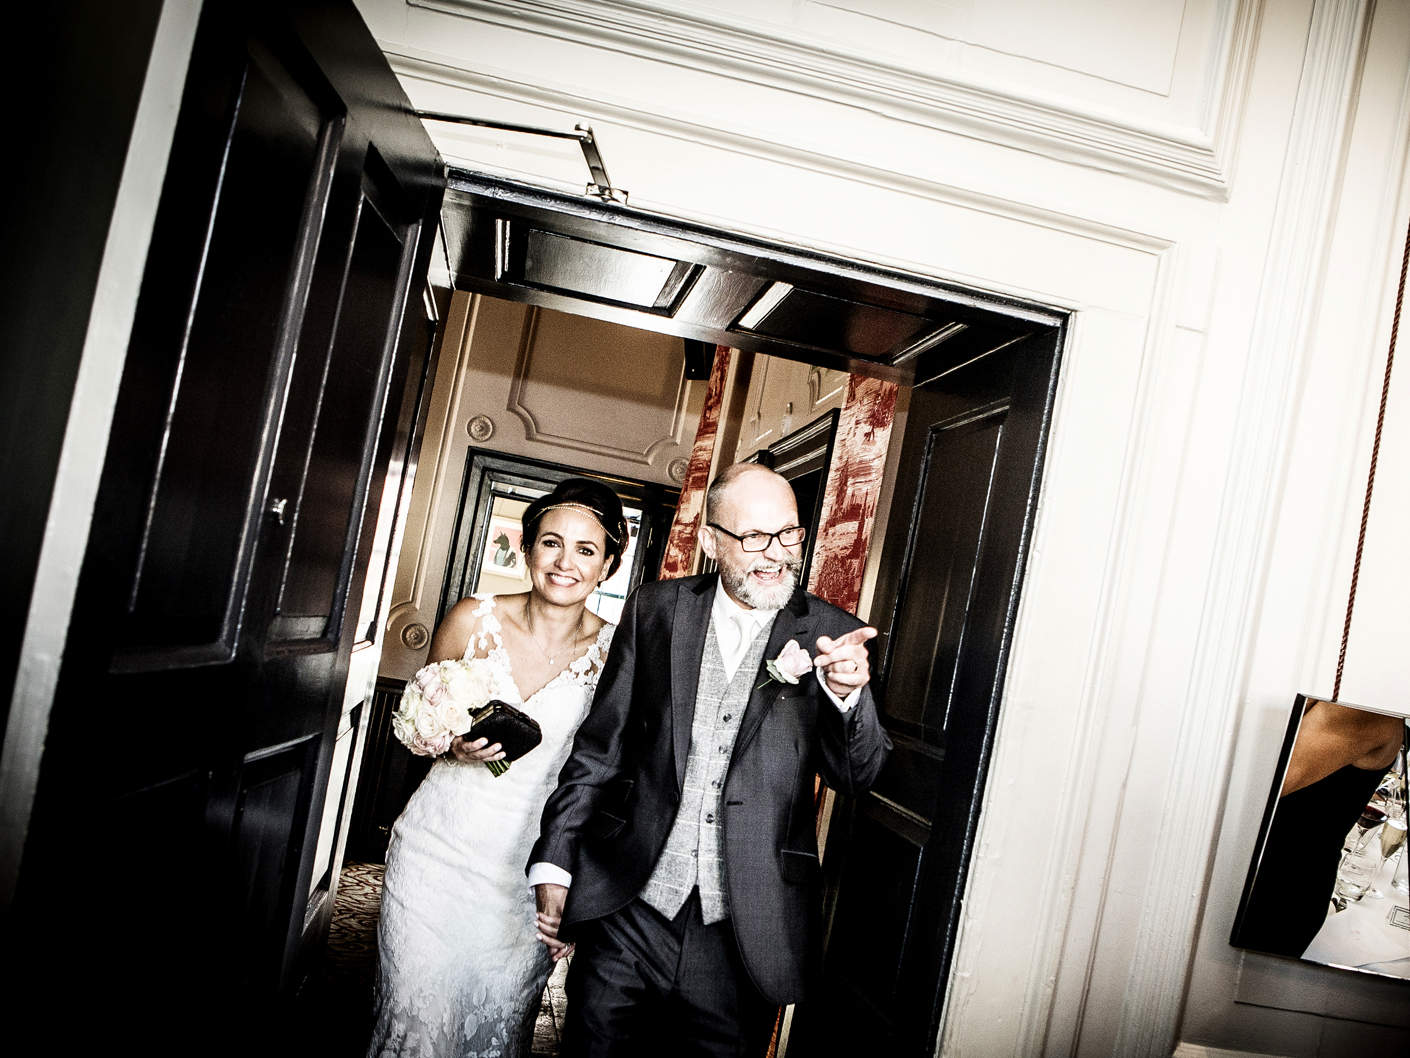 wedding-photography-of-the-bride-and-groom-entering-the-wedding-breakfast